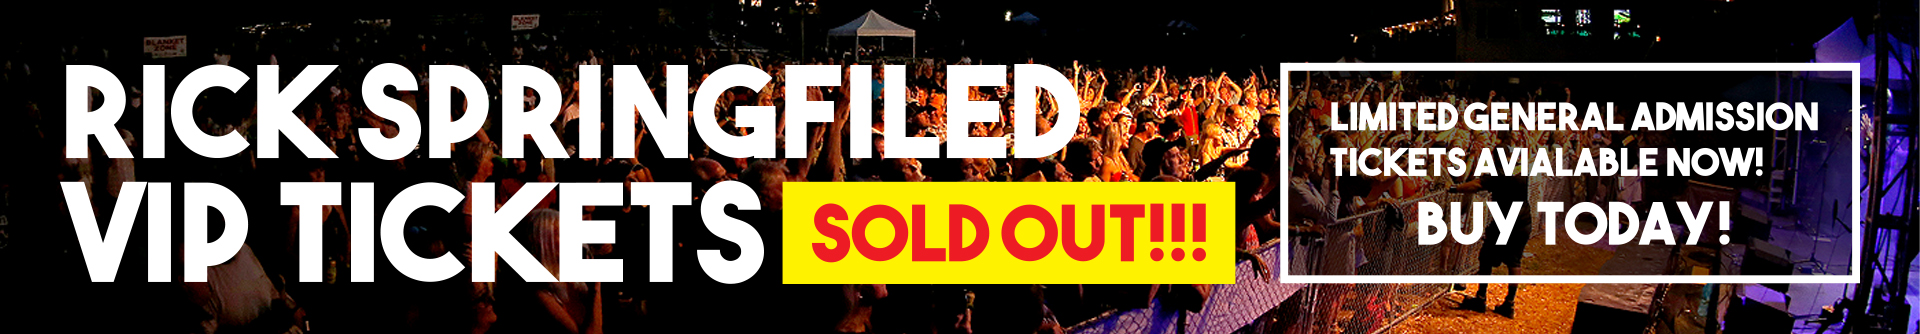 Rick Springfield Tickets Sold Out